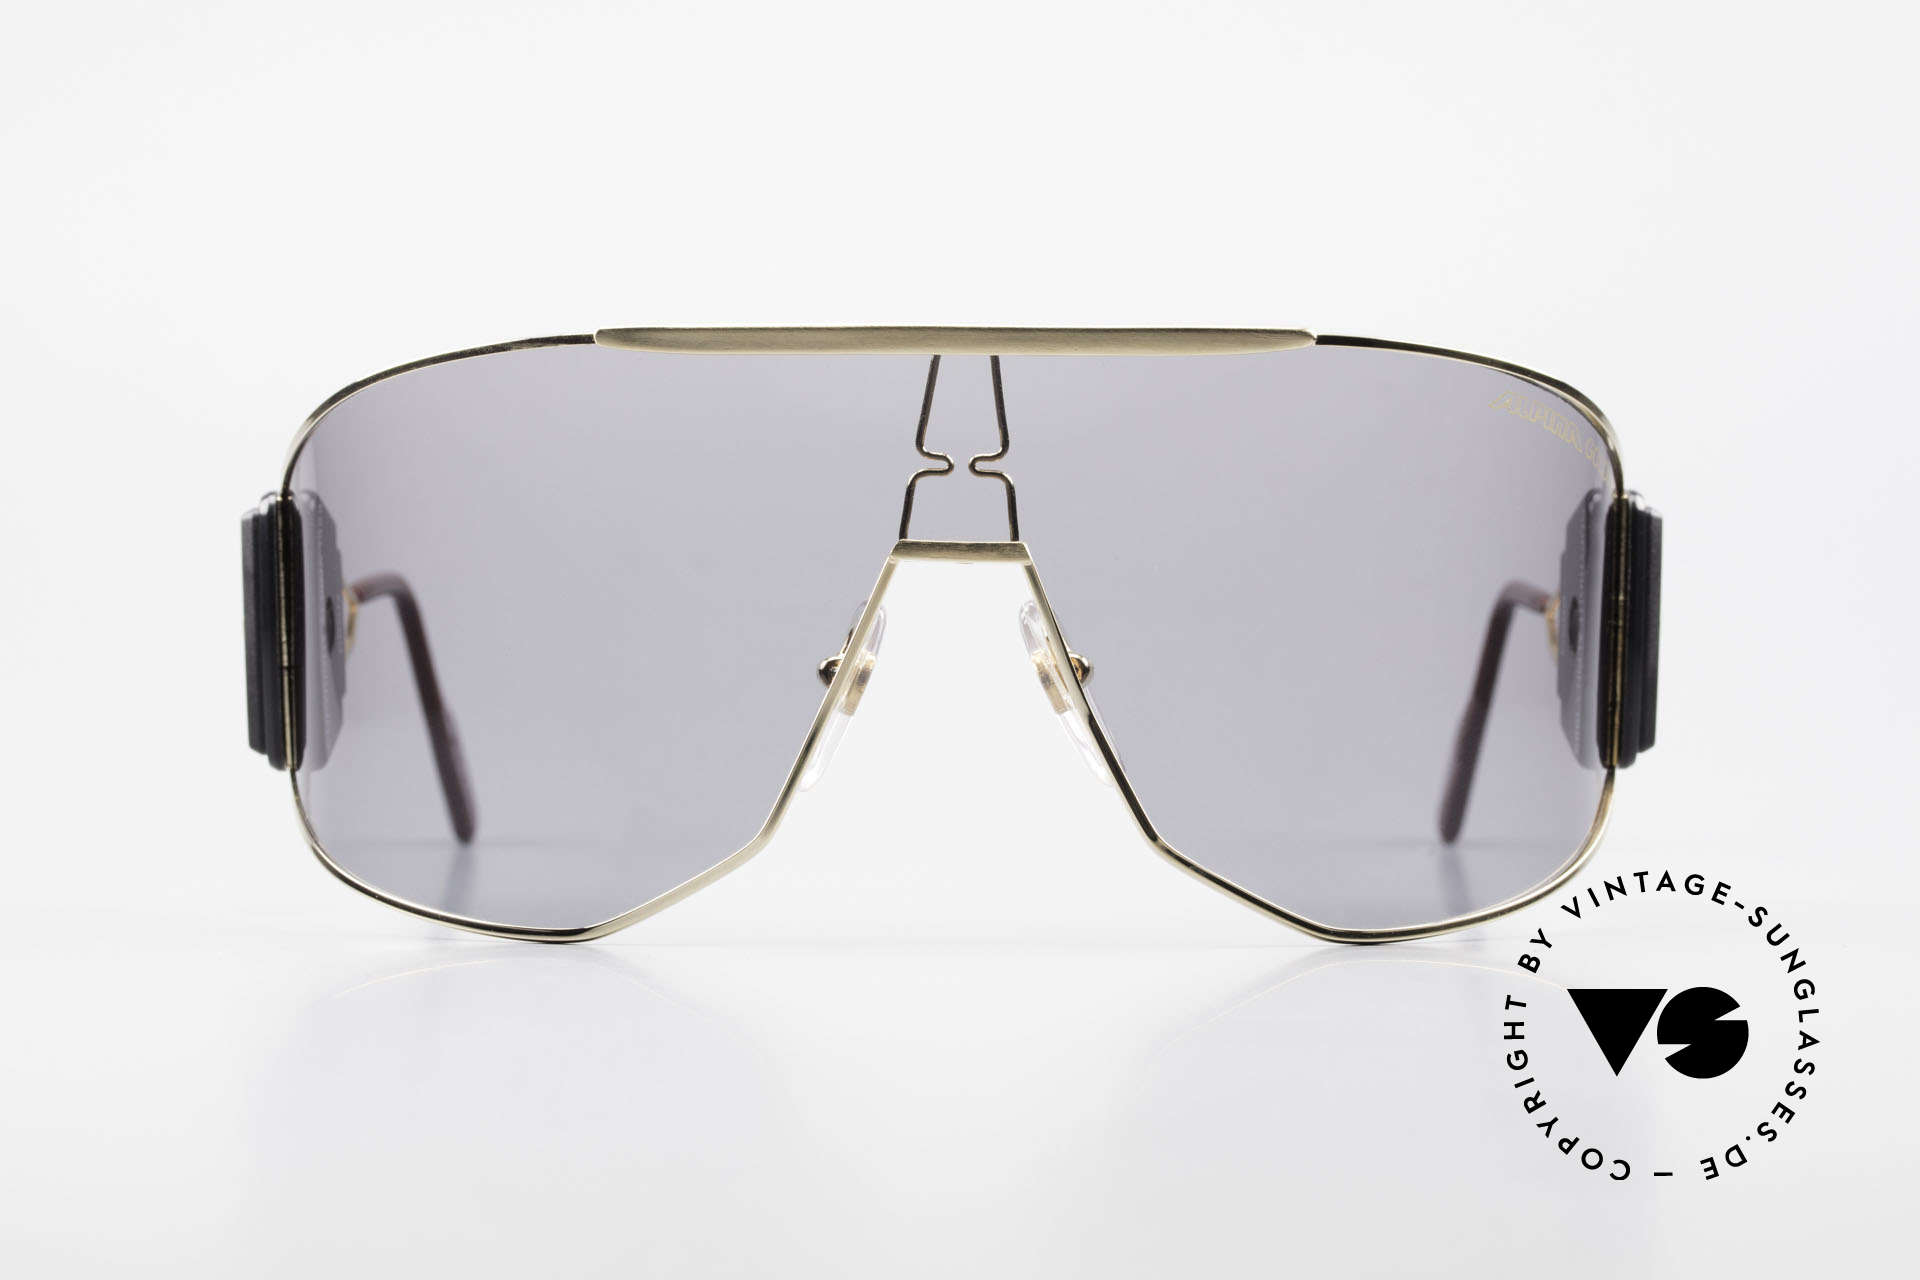 Alpina Goldwing Rare Celebrity Sunglasses 80's, worn by celebs like Kanye West, Lady Gaga, Madonna, Made for Men and Women